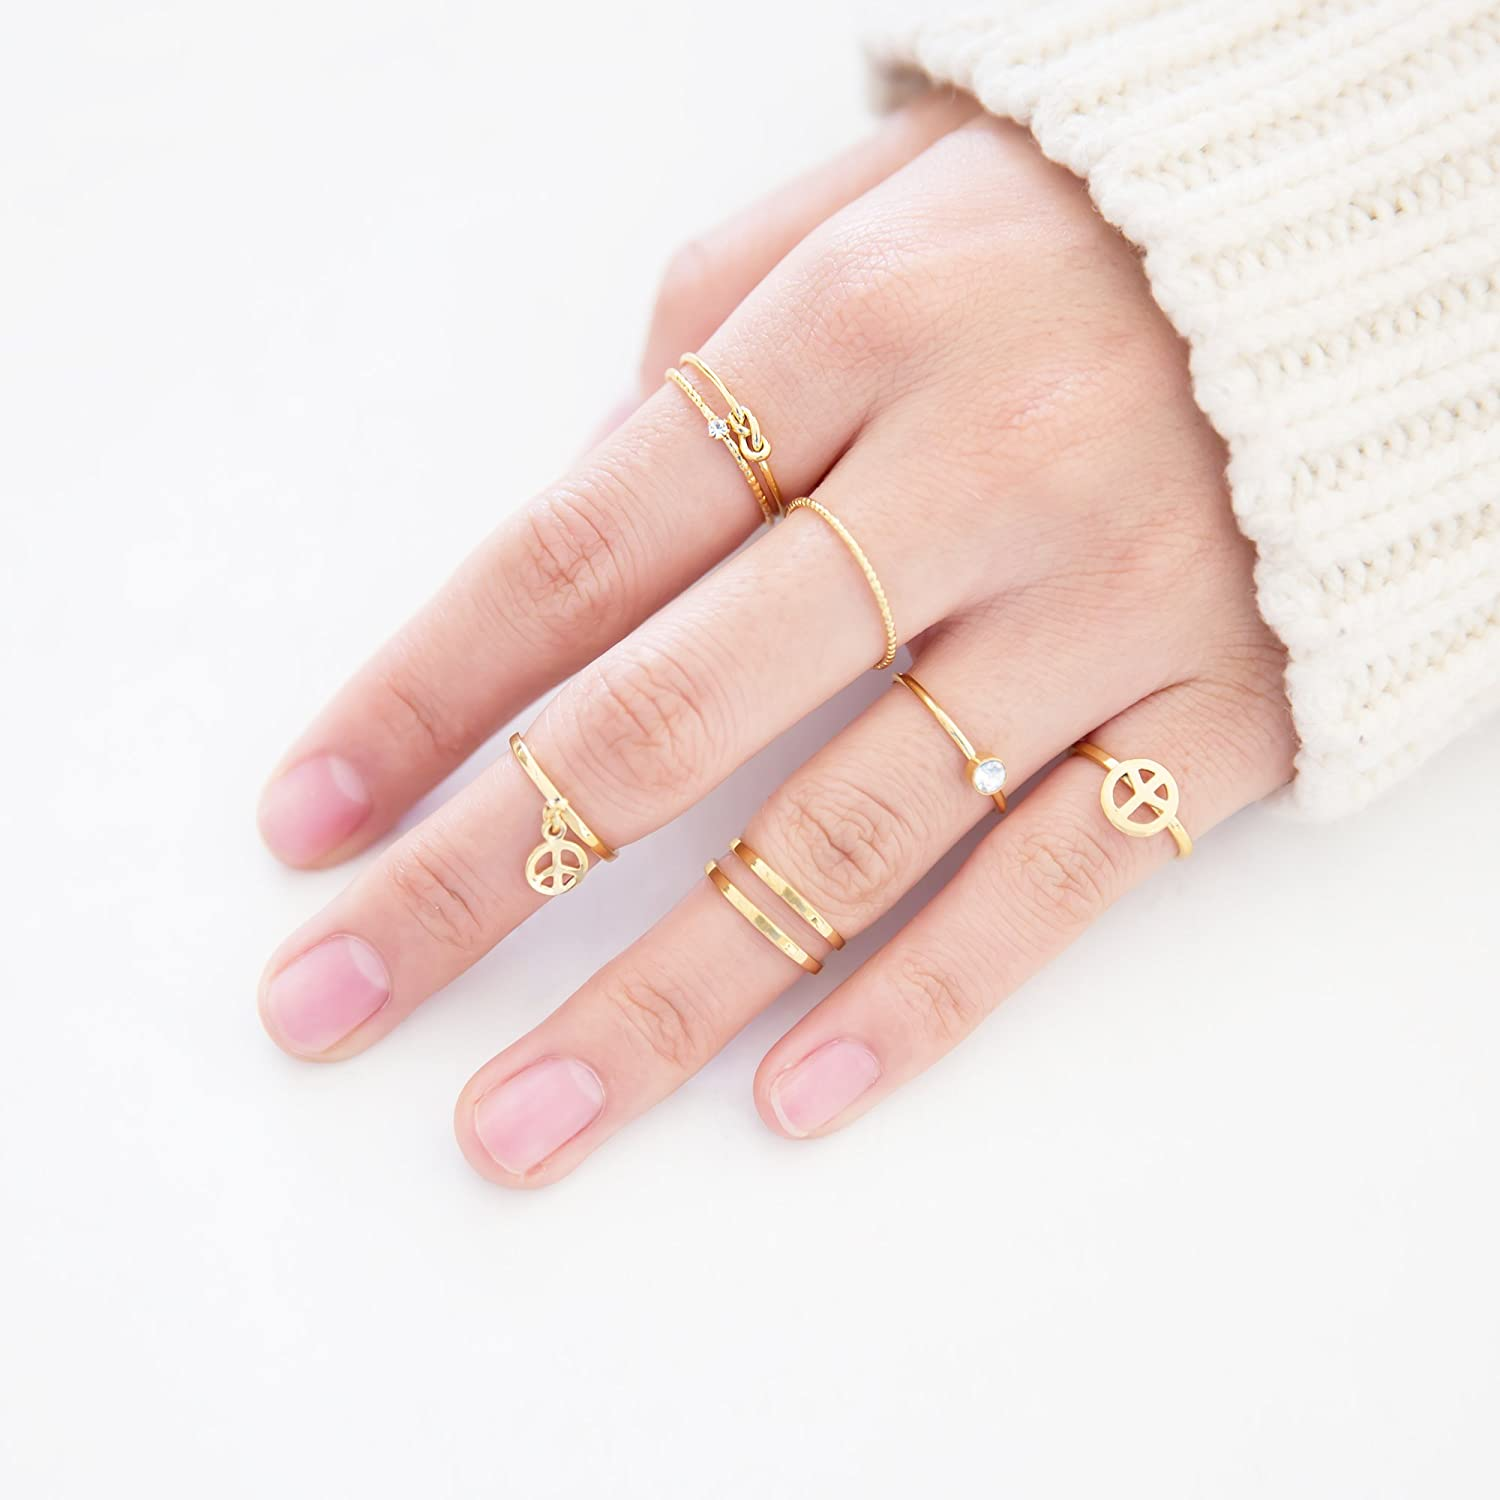 Amazon.com: Fashion Jewelry Rings Set of 7 pcs Stackable Peace ...